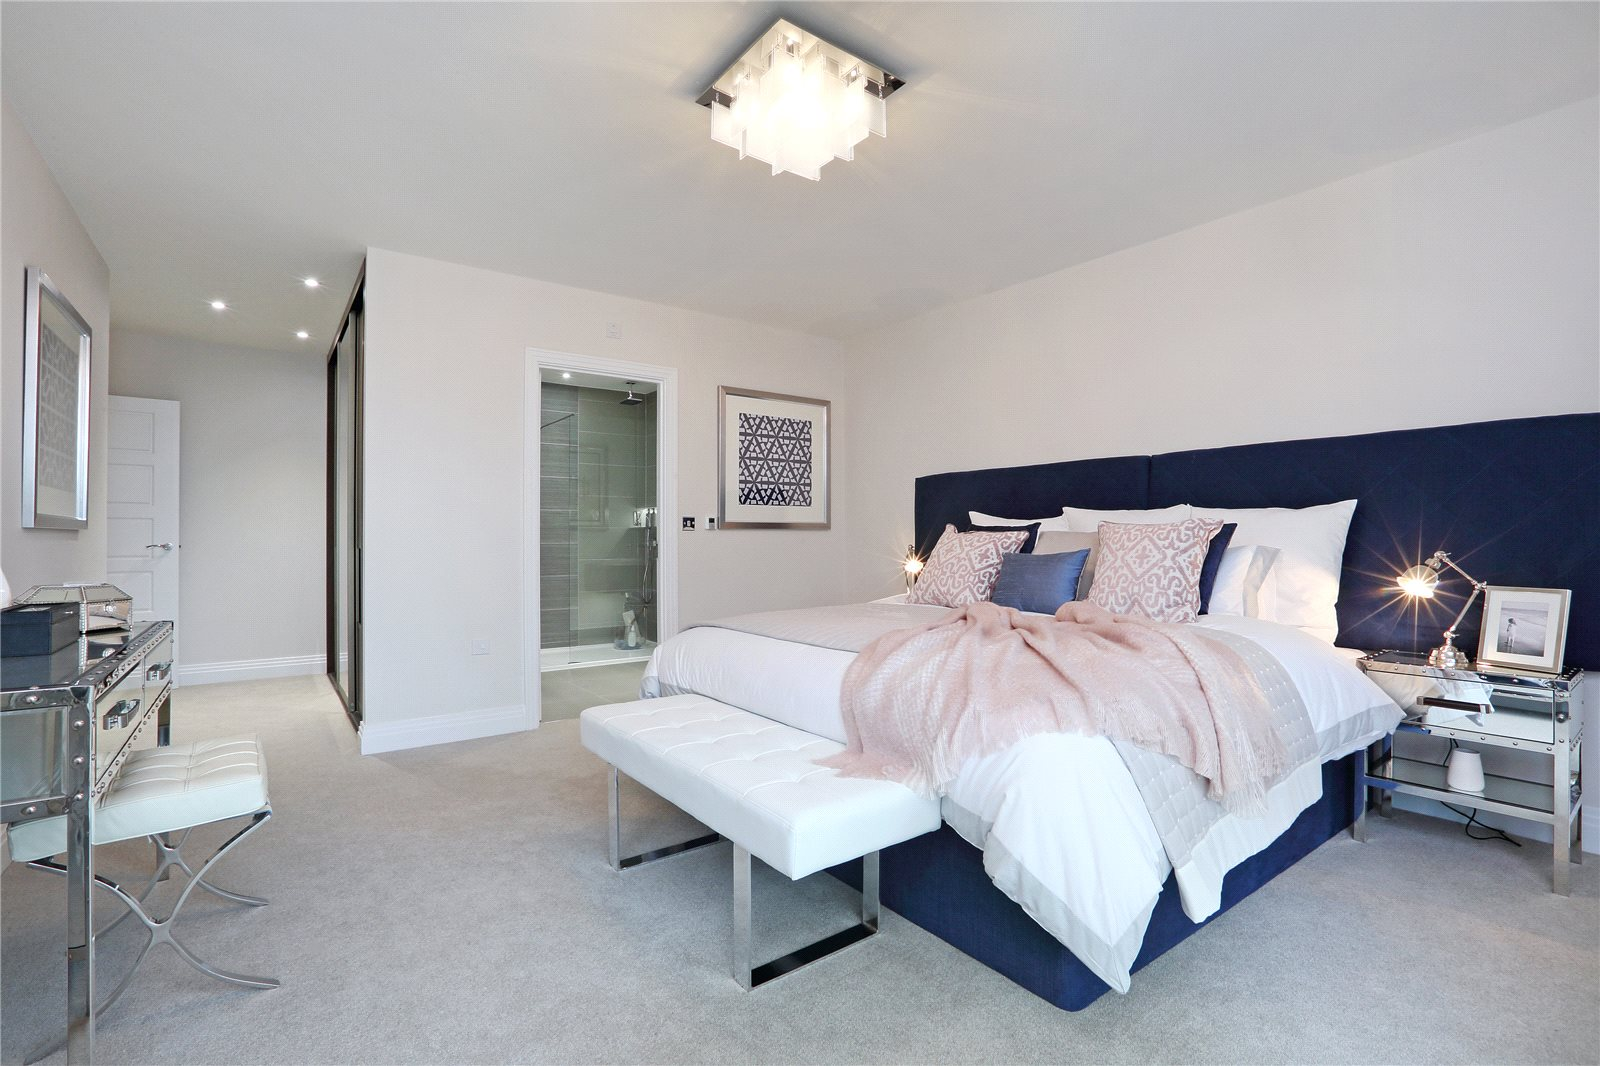 Additional photo for property listing at South Park Crescent, Gerrards Cross, Buckinghamshire, SL9 Gerrards Cross, Ingiltere